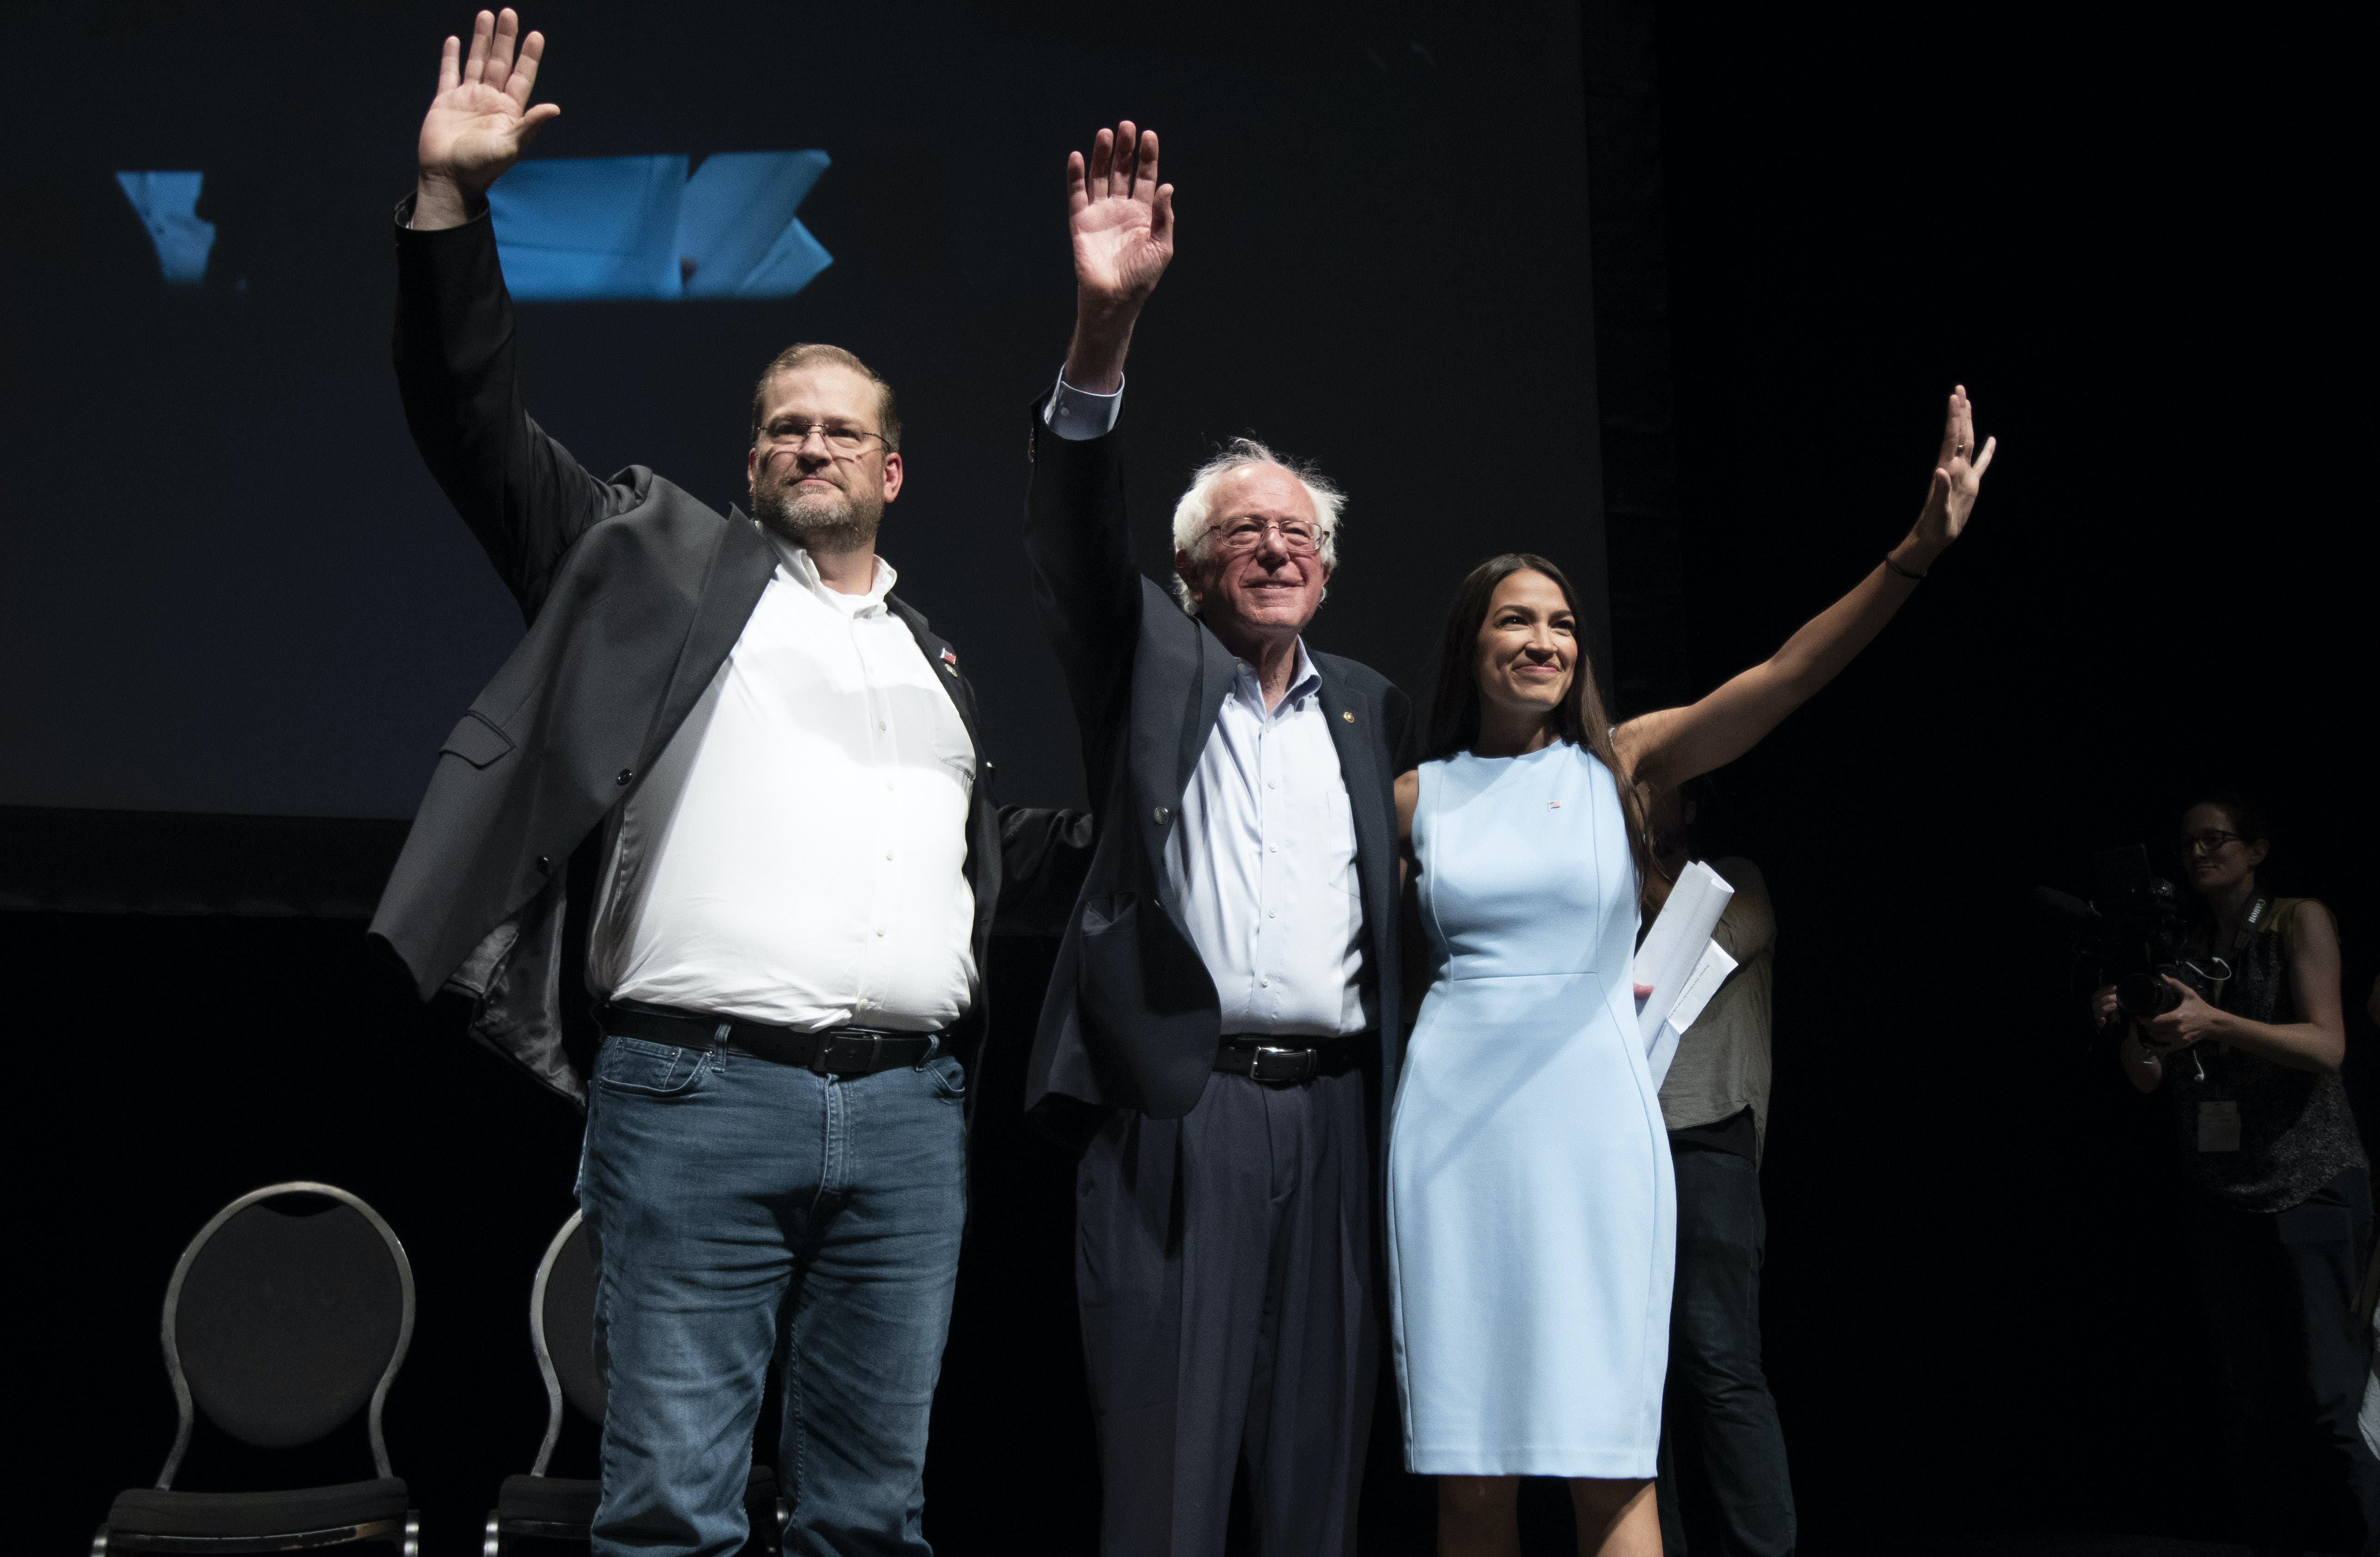 Meet the Pro Cannabis Candidates Endorsed by Alexandria Ocasio Cortez4 Meet the Pro Cannabis Candidates Endorsed by Alexandria Ocasio Cortez